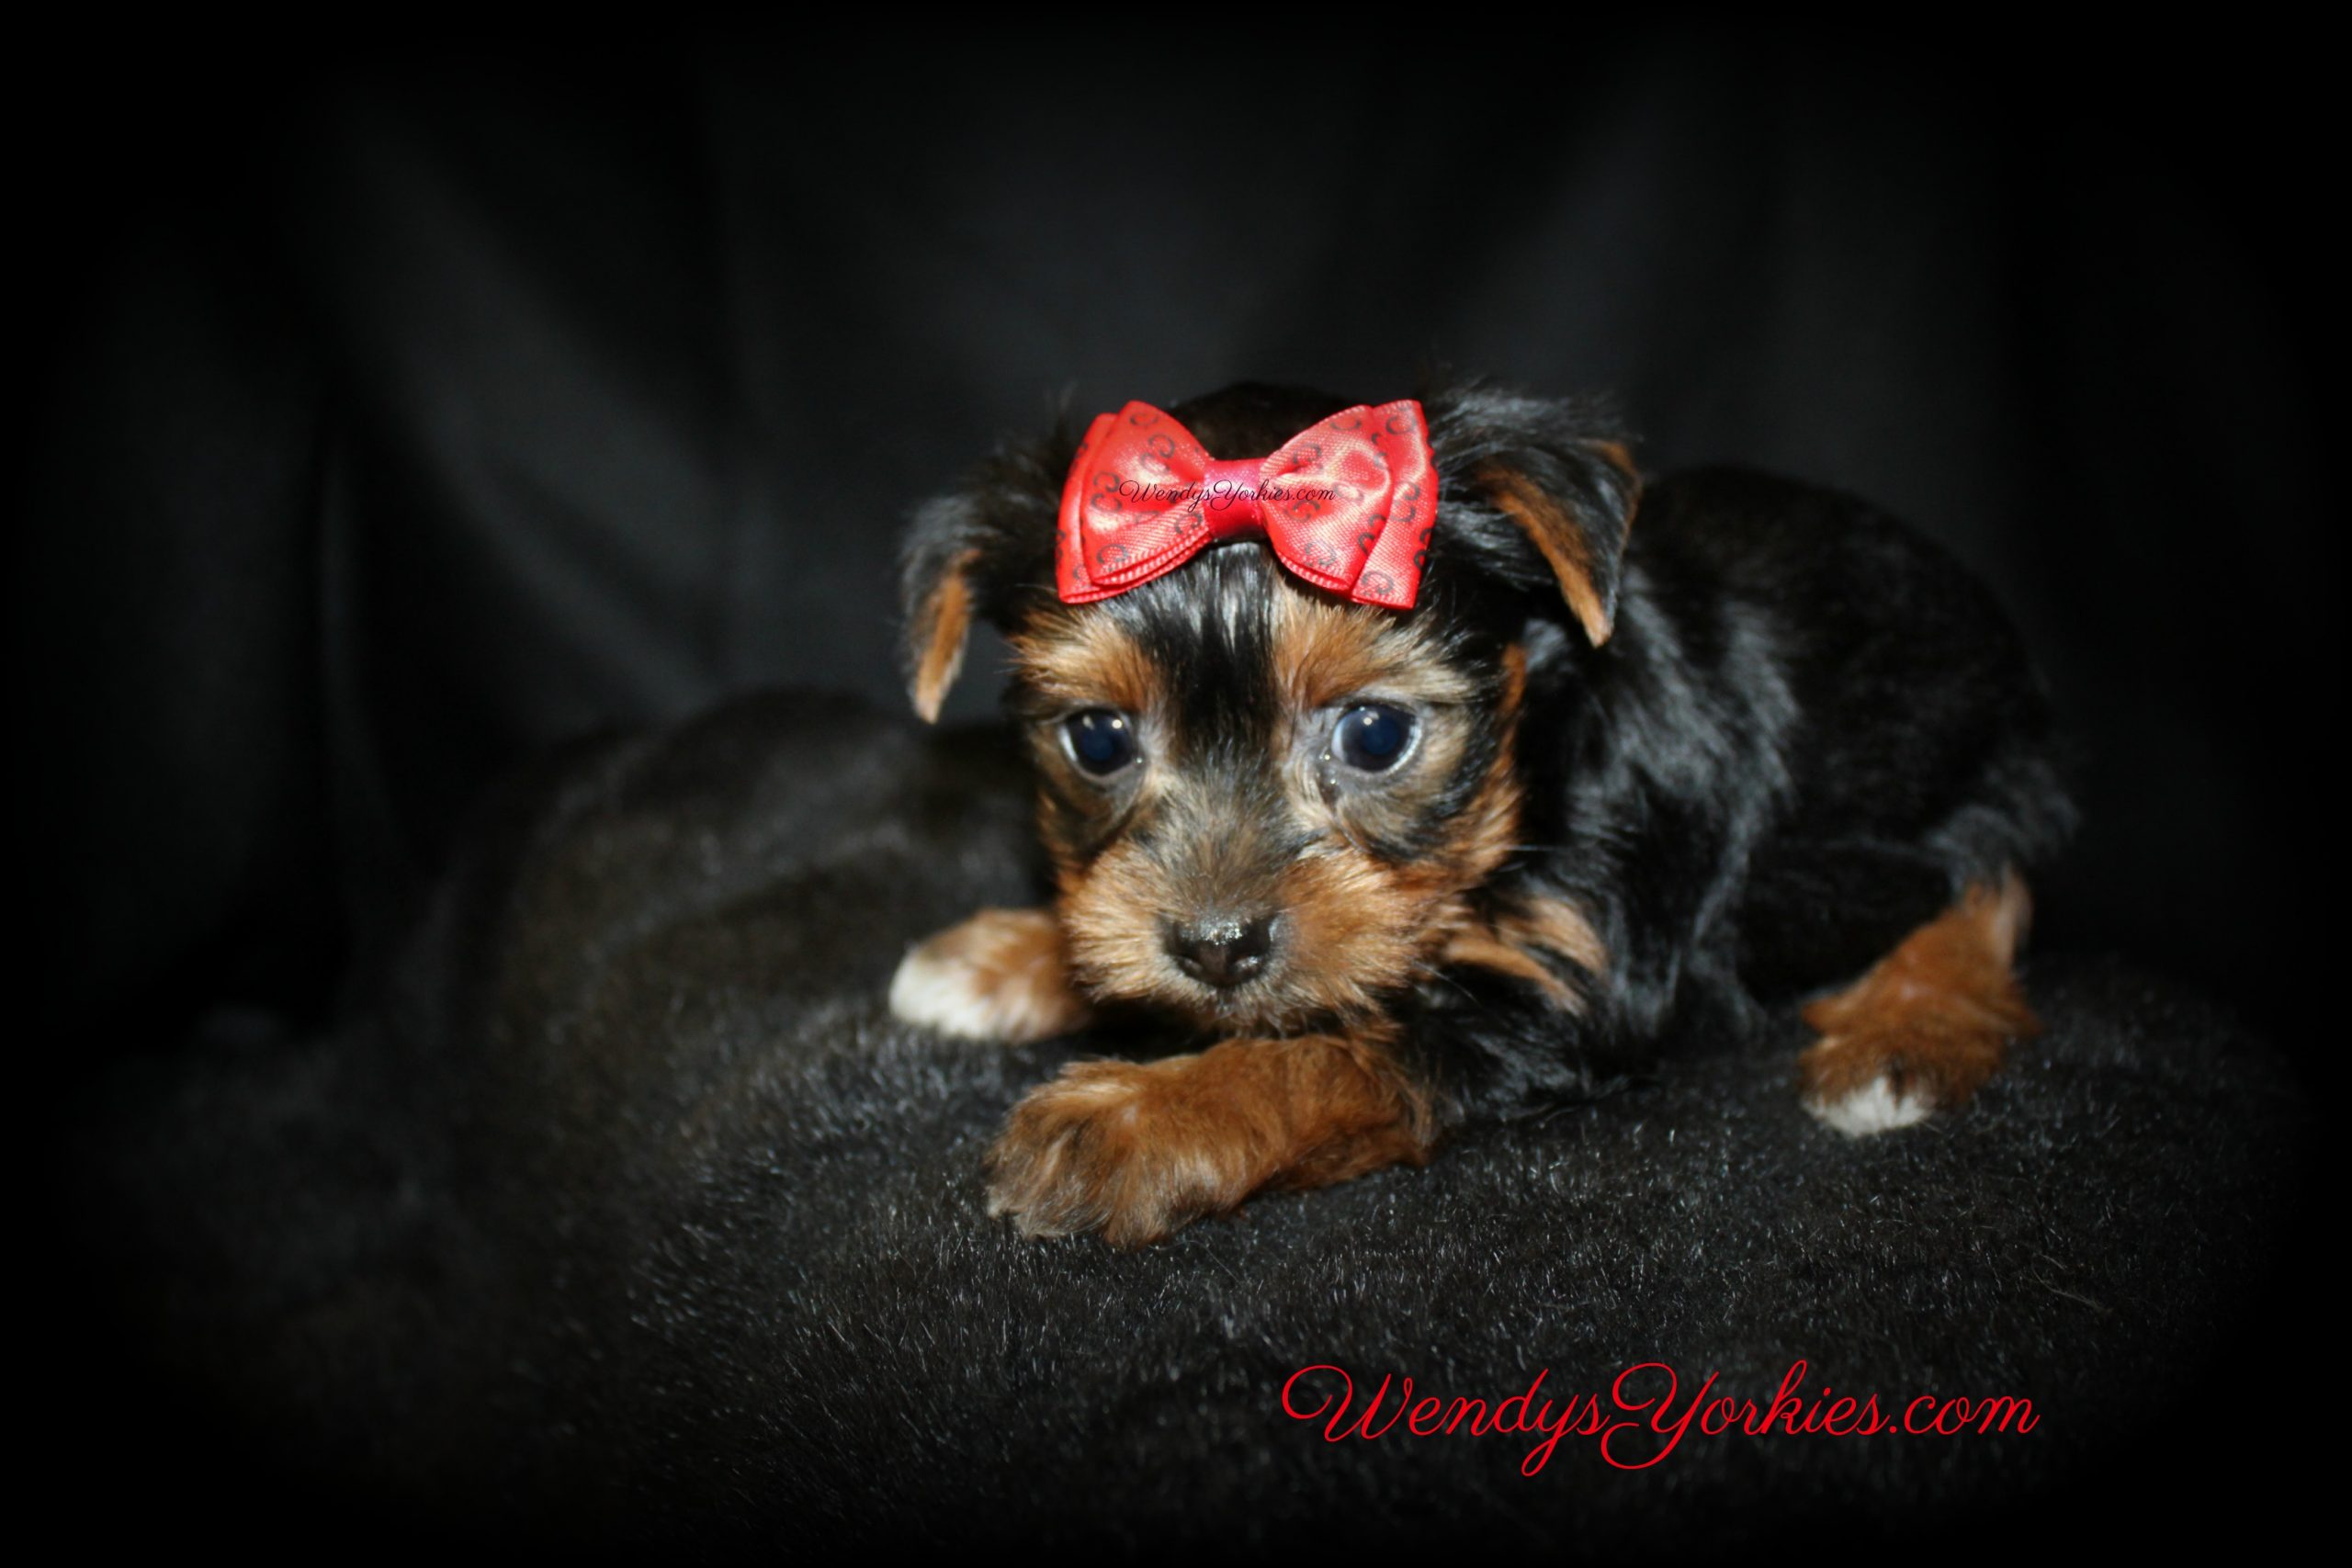 Male Yorkie puppy for sale in Texas, WendysYorkies.com